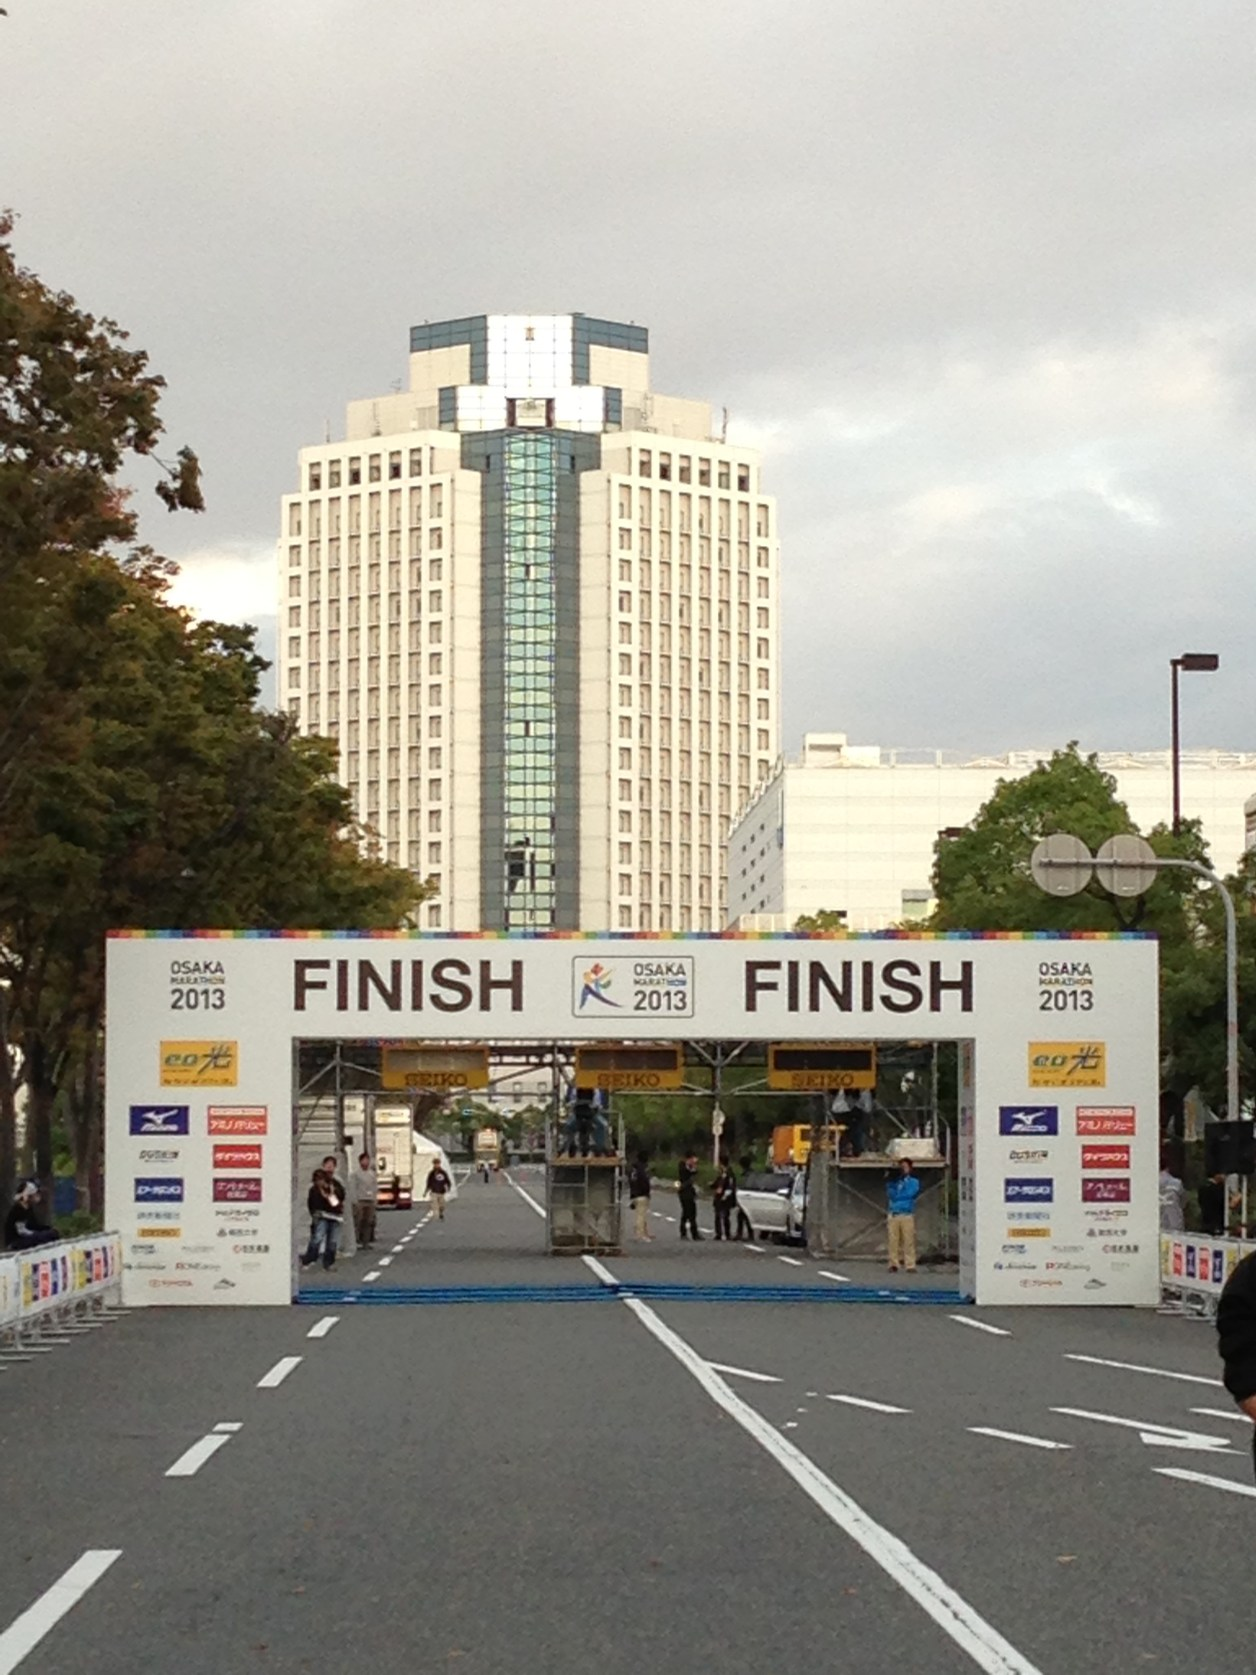 osaka-marathon-finish